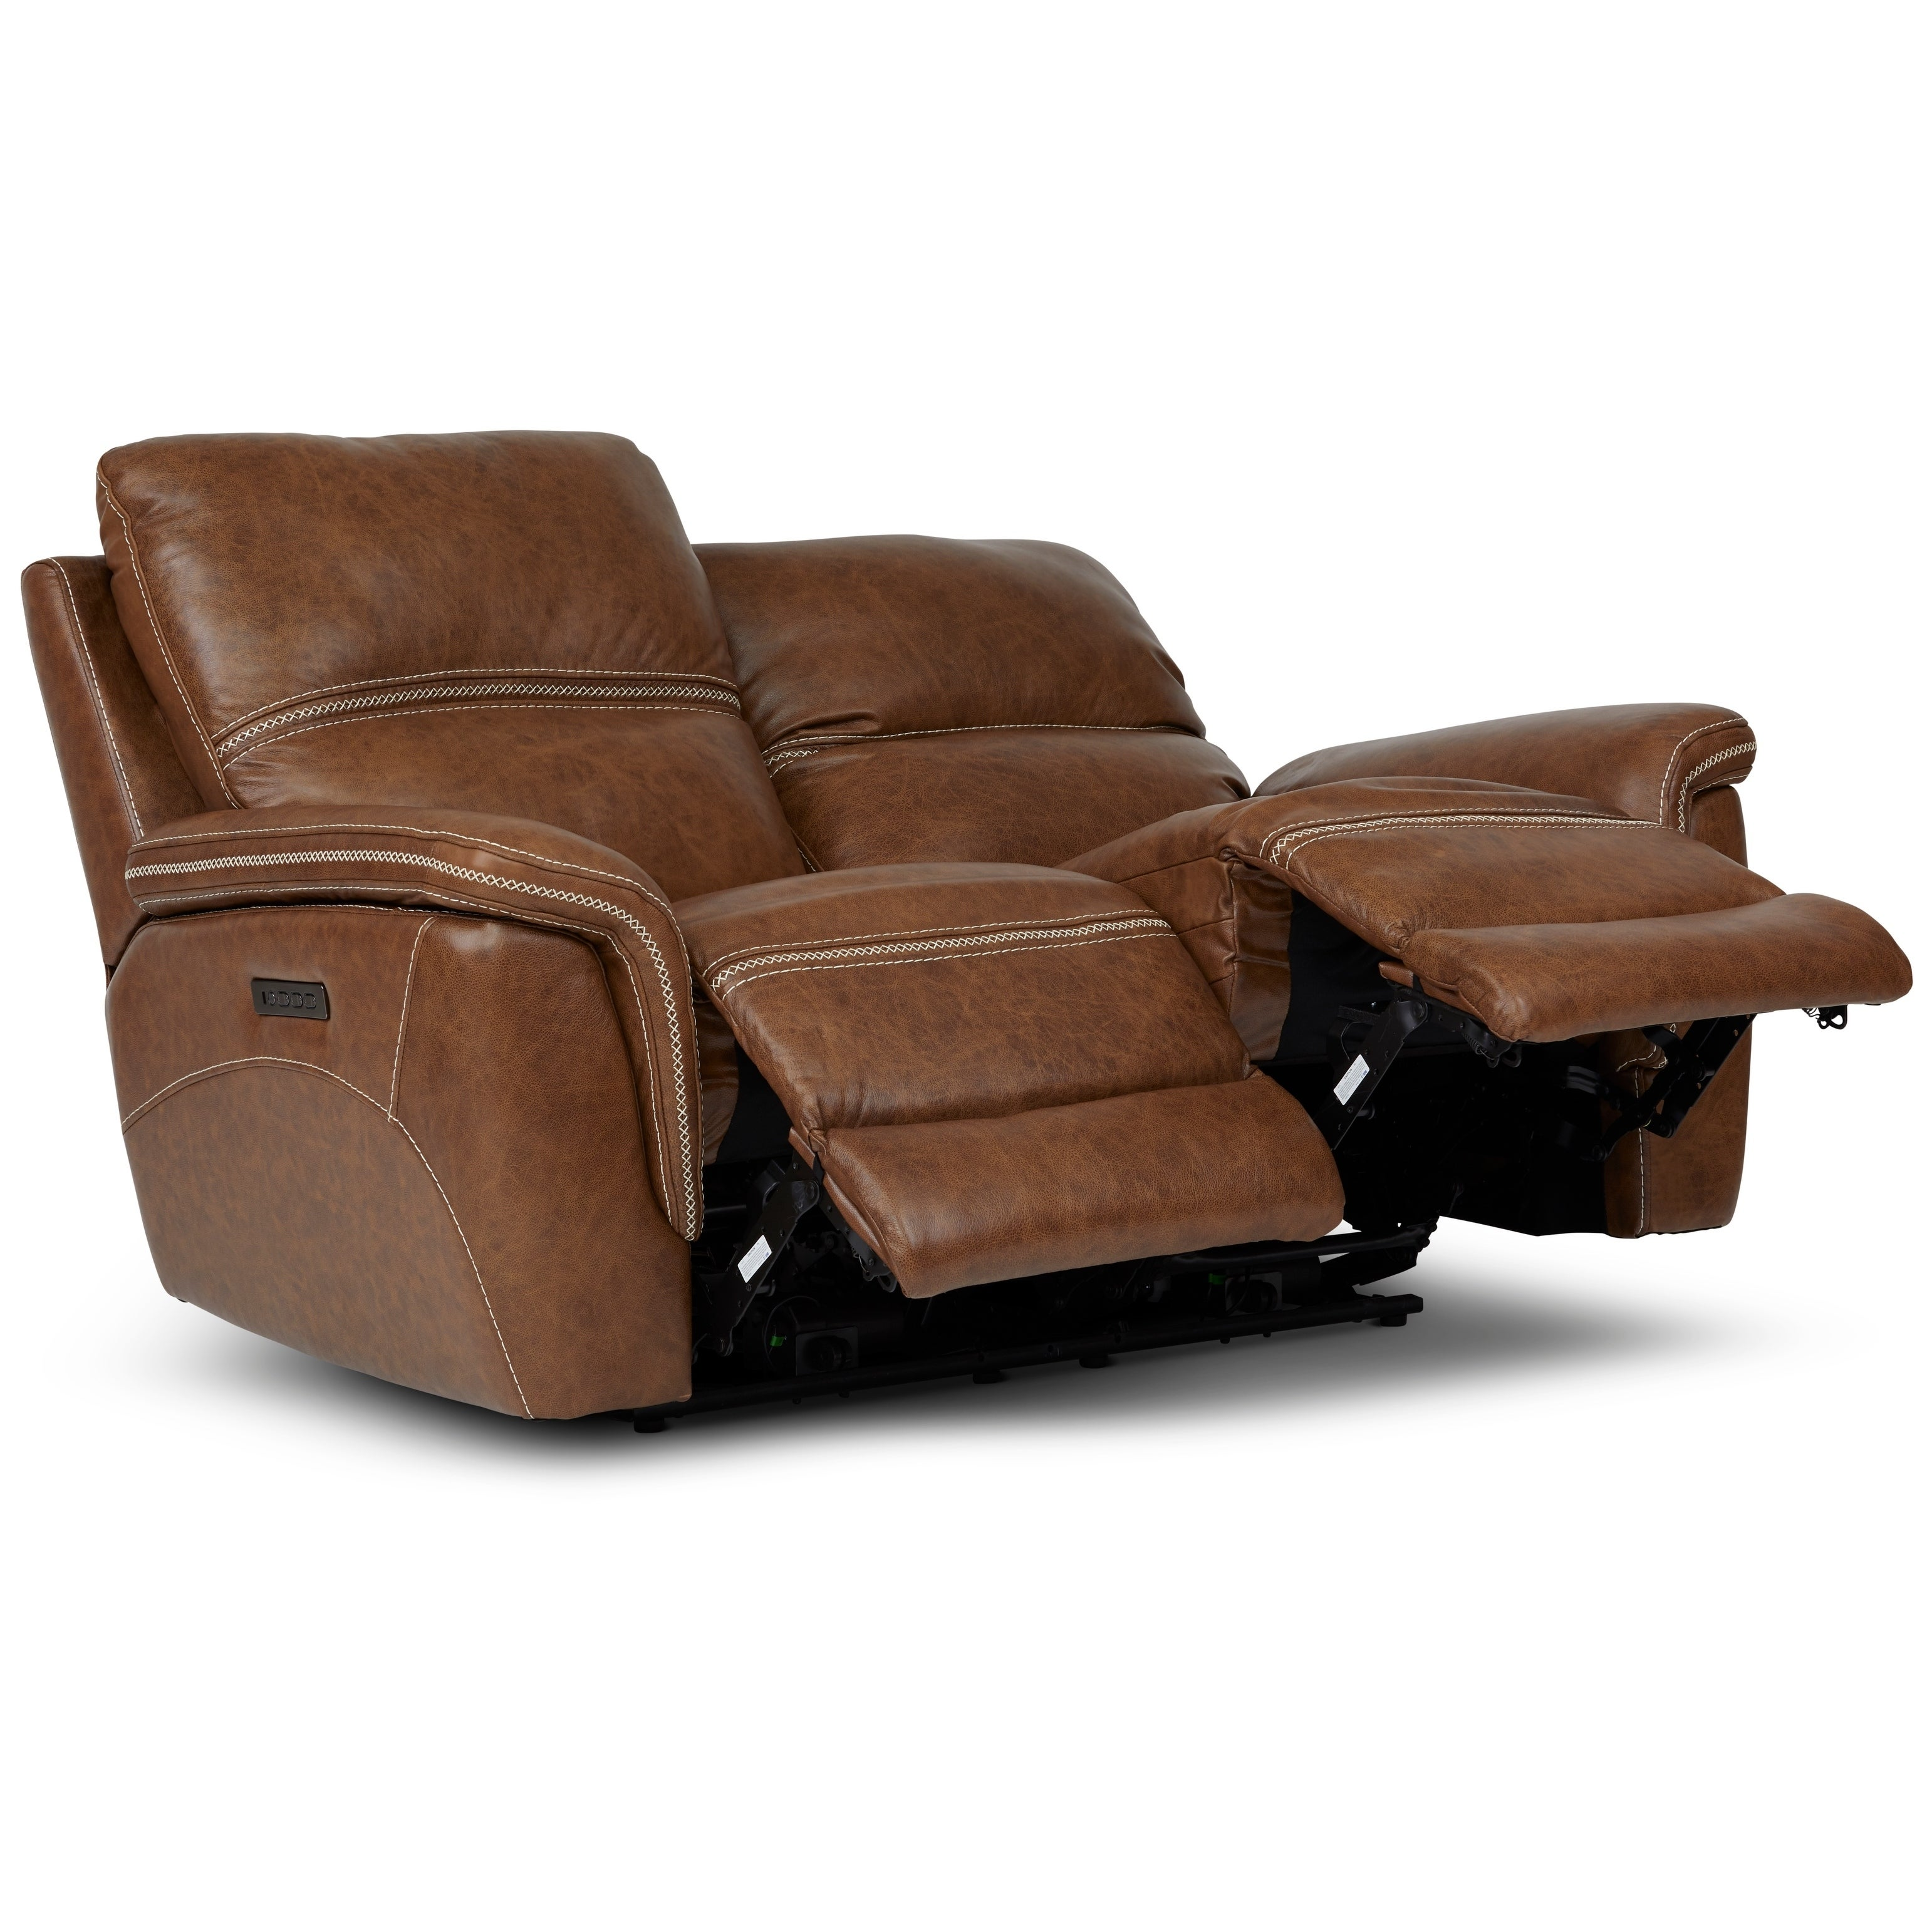 Shop Mason Reclining Loveseat With Power Headrest And Lumbar Support